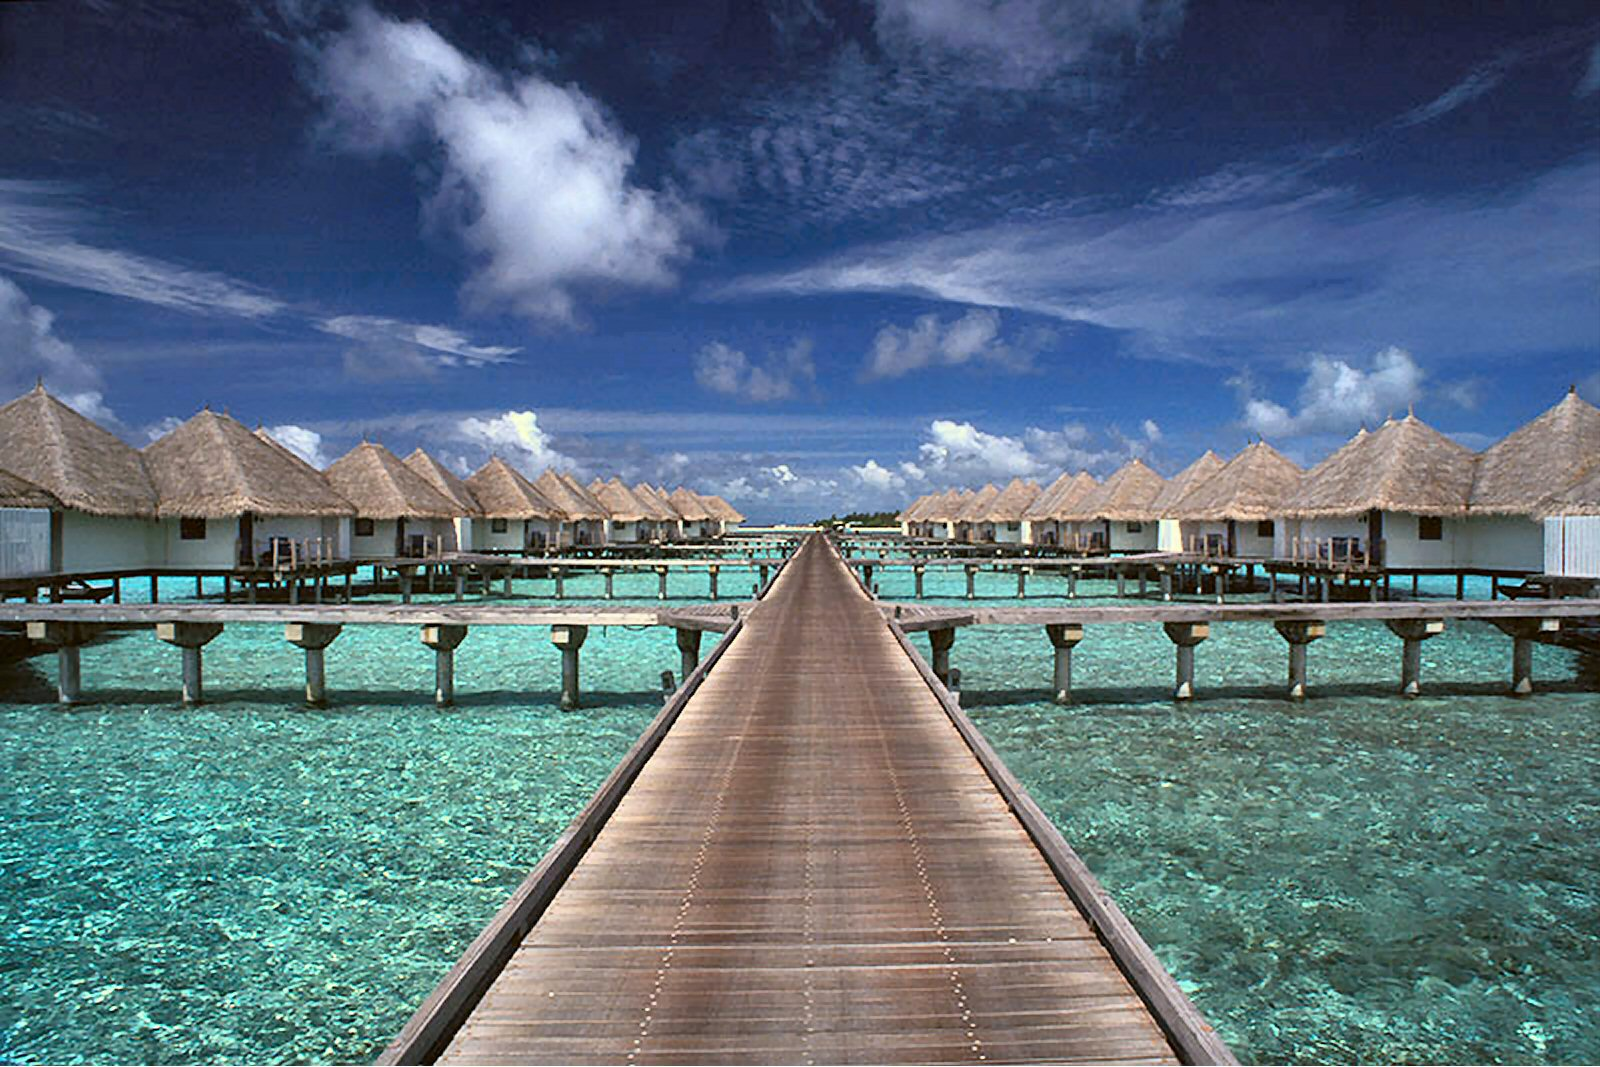 tourism in maldives Tourism is the number one generator of revenue in the maldives, and for this reason, choosing eco-friendly and locally sponsored activities and hotels is important to the maldivian culture.